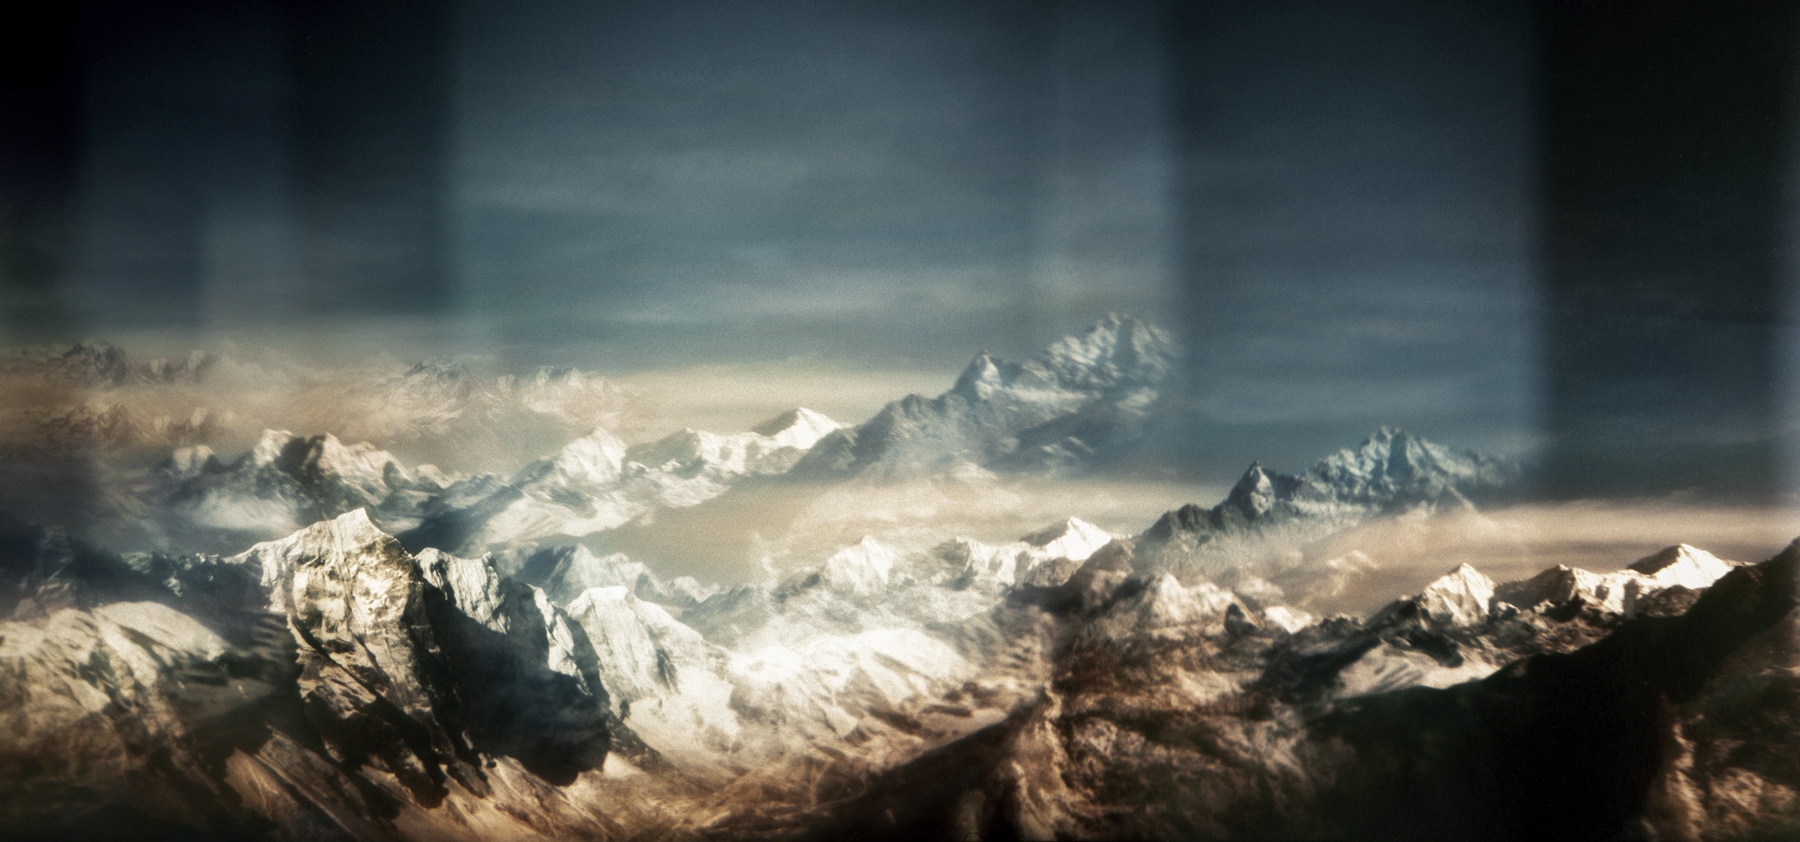 Jacob Felländer   Battered soul He left so young, brave and full of hope He came back but is nowhere to be found Mount Everest, Himalaya, 2016 Archival Pigment Print 90 x 190 cm Edition 3+1